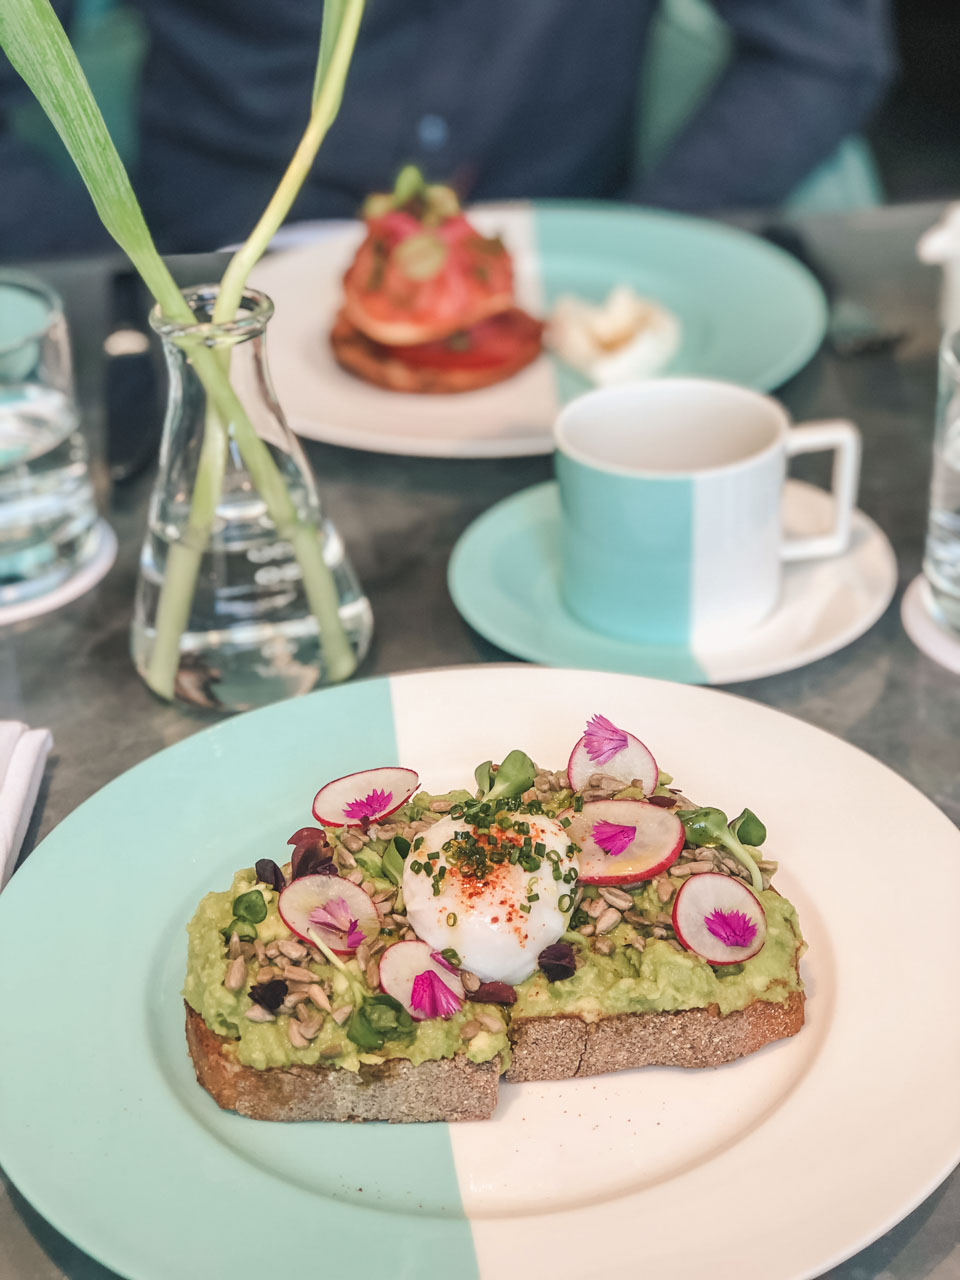 Avocado toast with a poached egg at The Blue Box Cafe in New York City